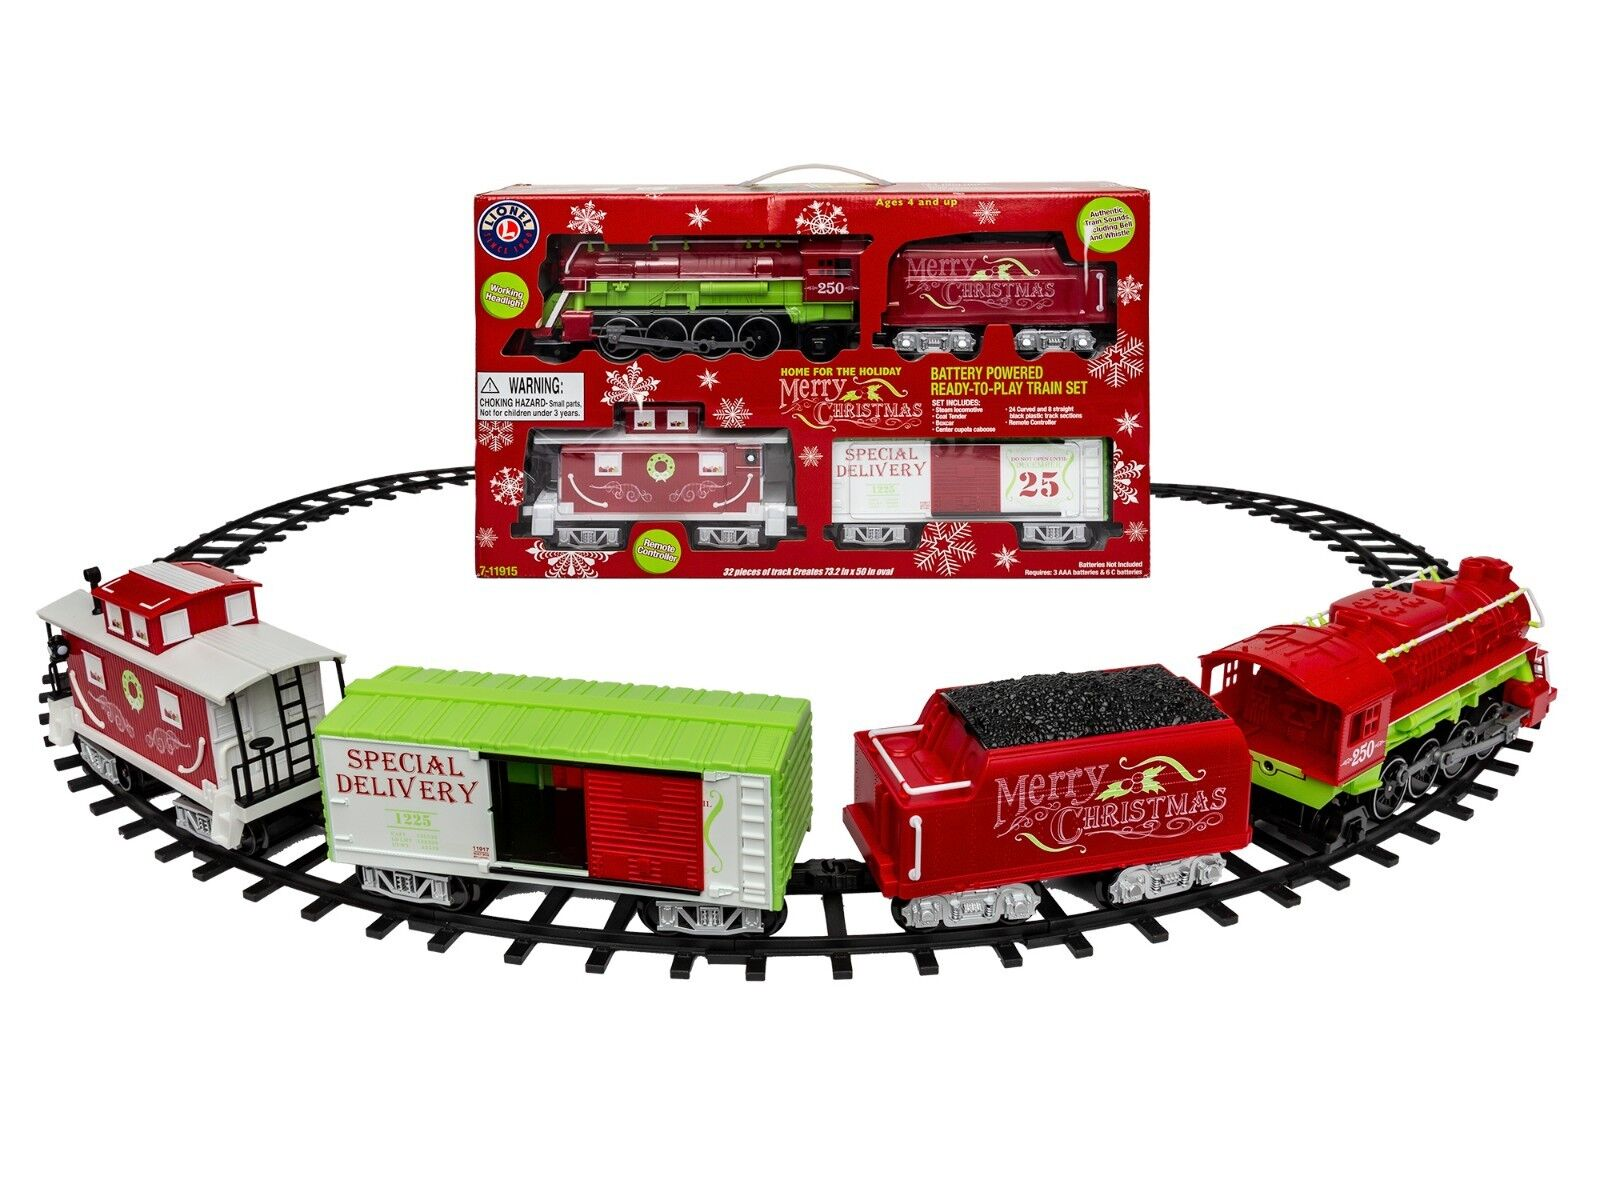 Lionel 7-11915 Home For The Holiday Ready-to-Play set